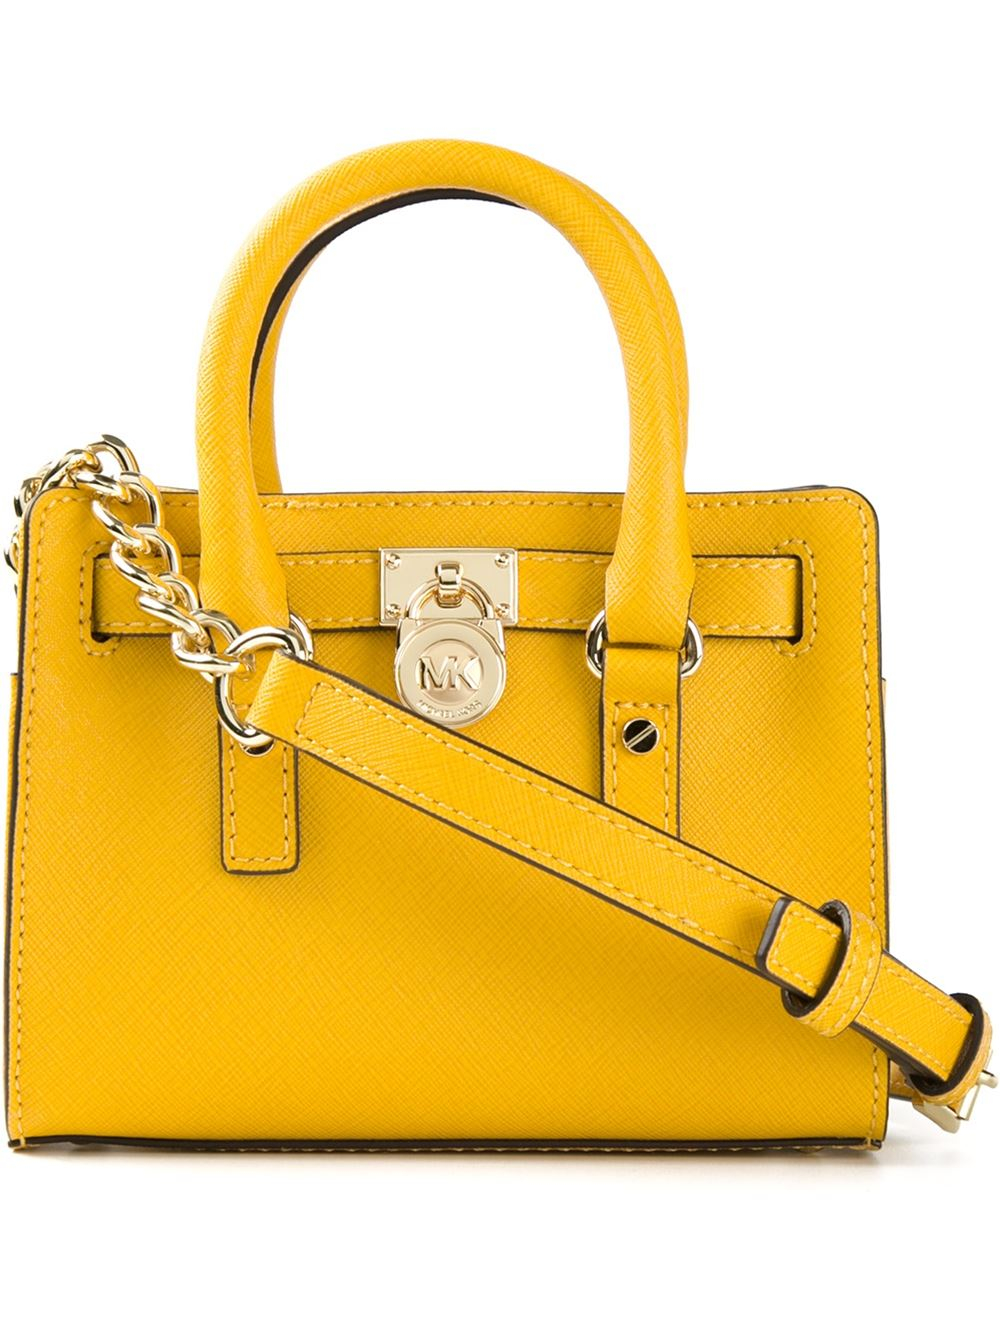 8d38310d4286a Lyst - MICHAEL Michael Kors Small  Hamilton  Tote Bag in Yellow